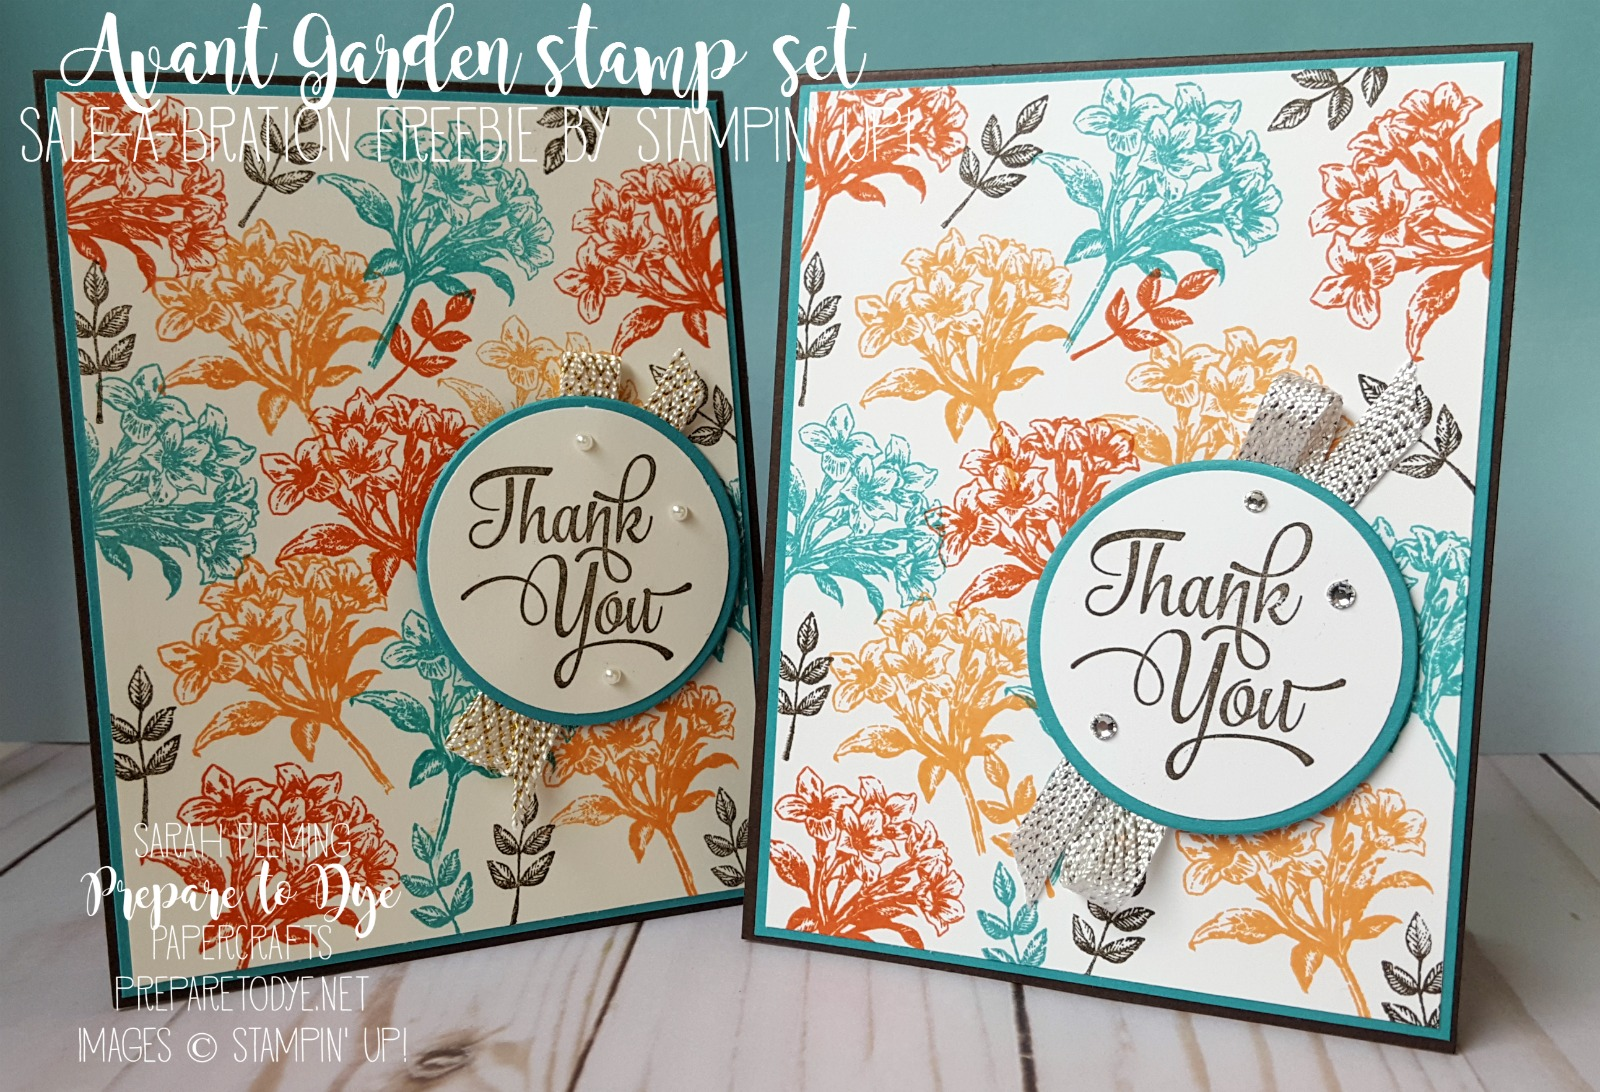 Stampin' Up! Avant Garden stamp set with One Big Meaning - Sale-A-Bration freebie with $50 purchase - handmade thank you card - #GDP077 - Sarah Fleming - Prepare to Dye Papercrafts